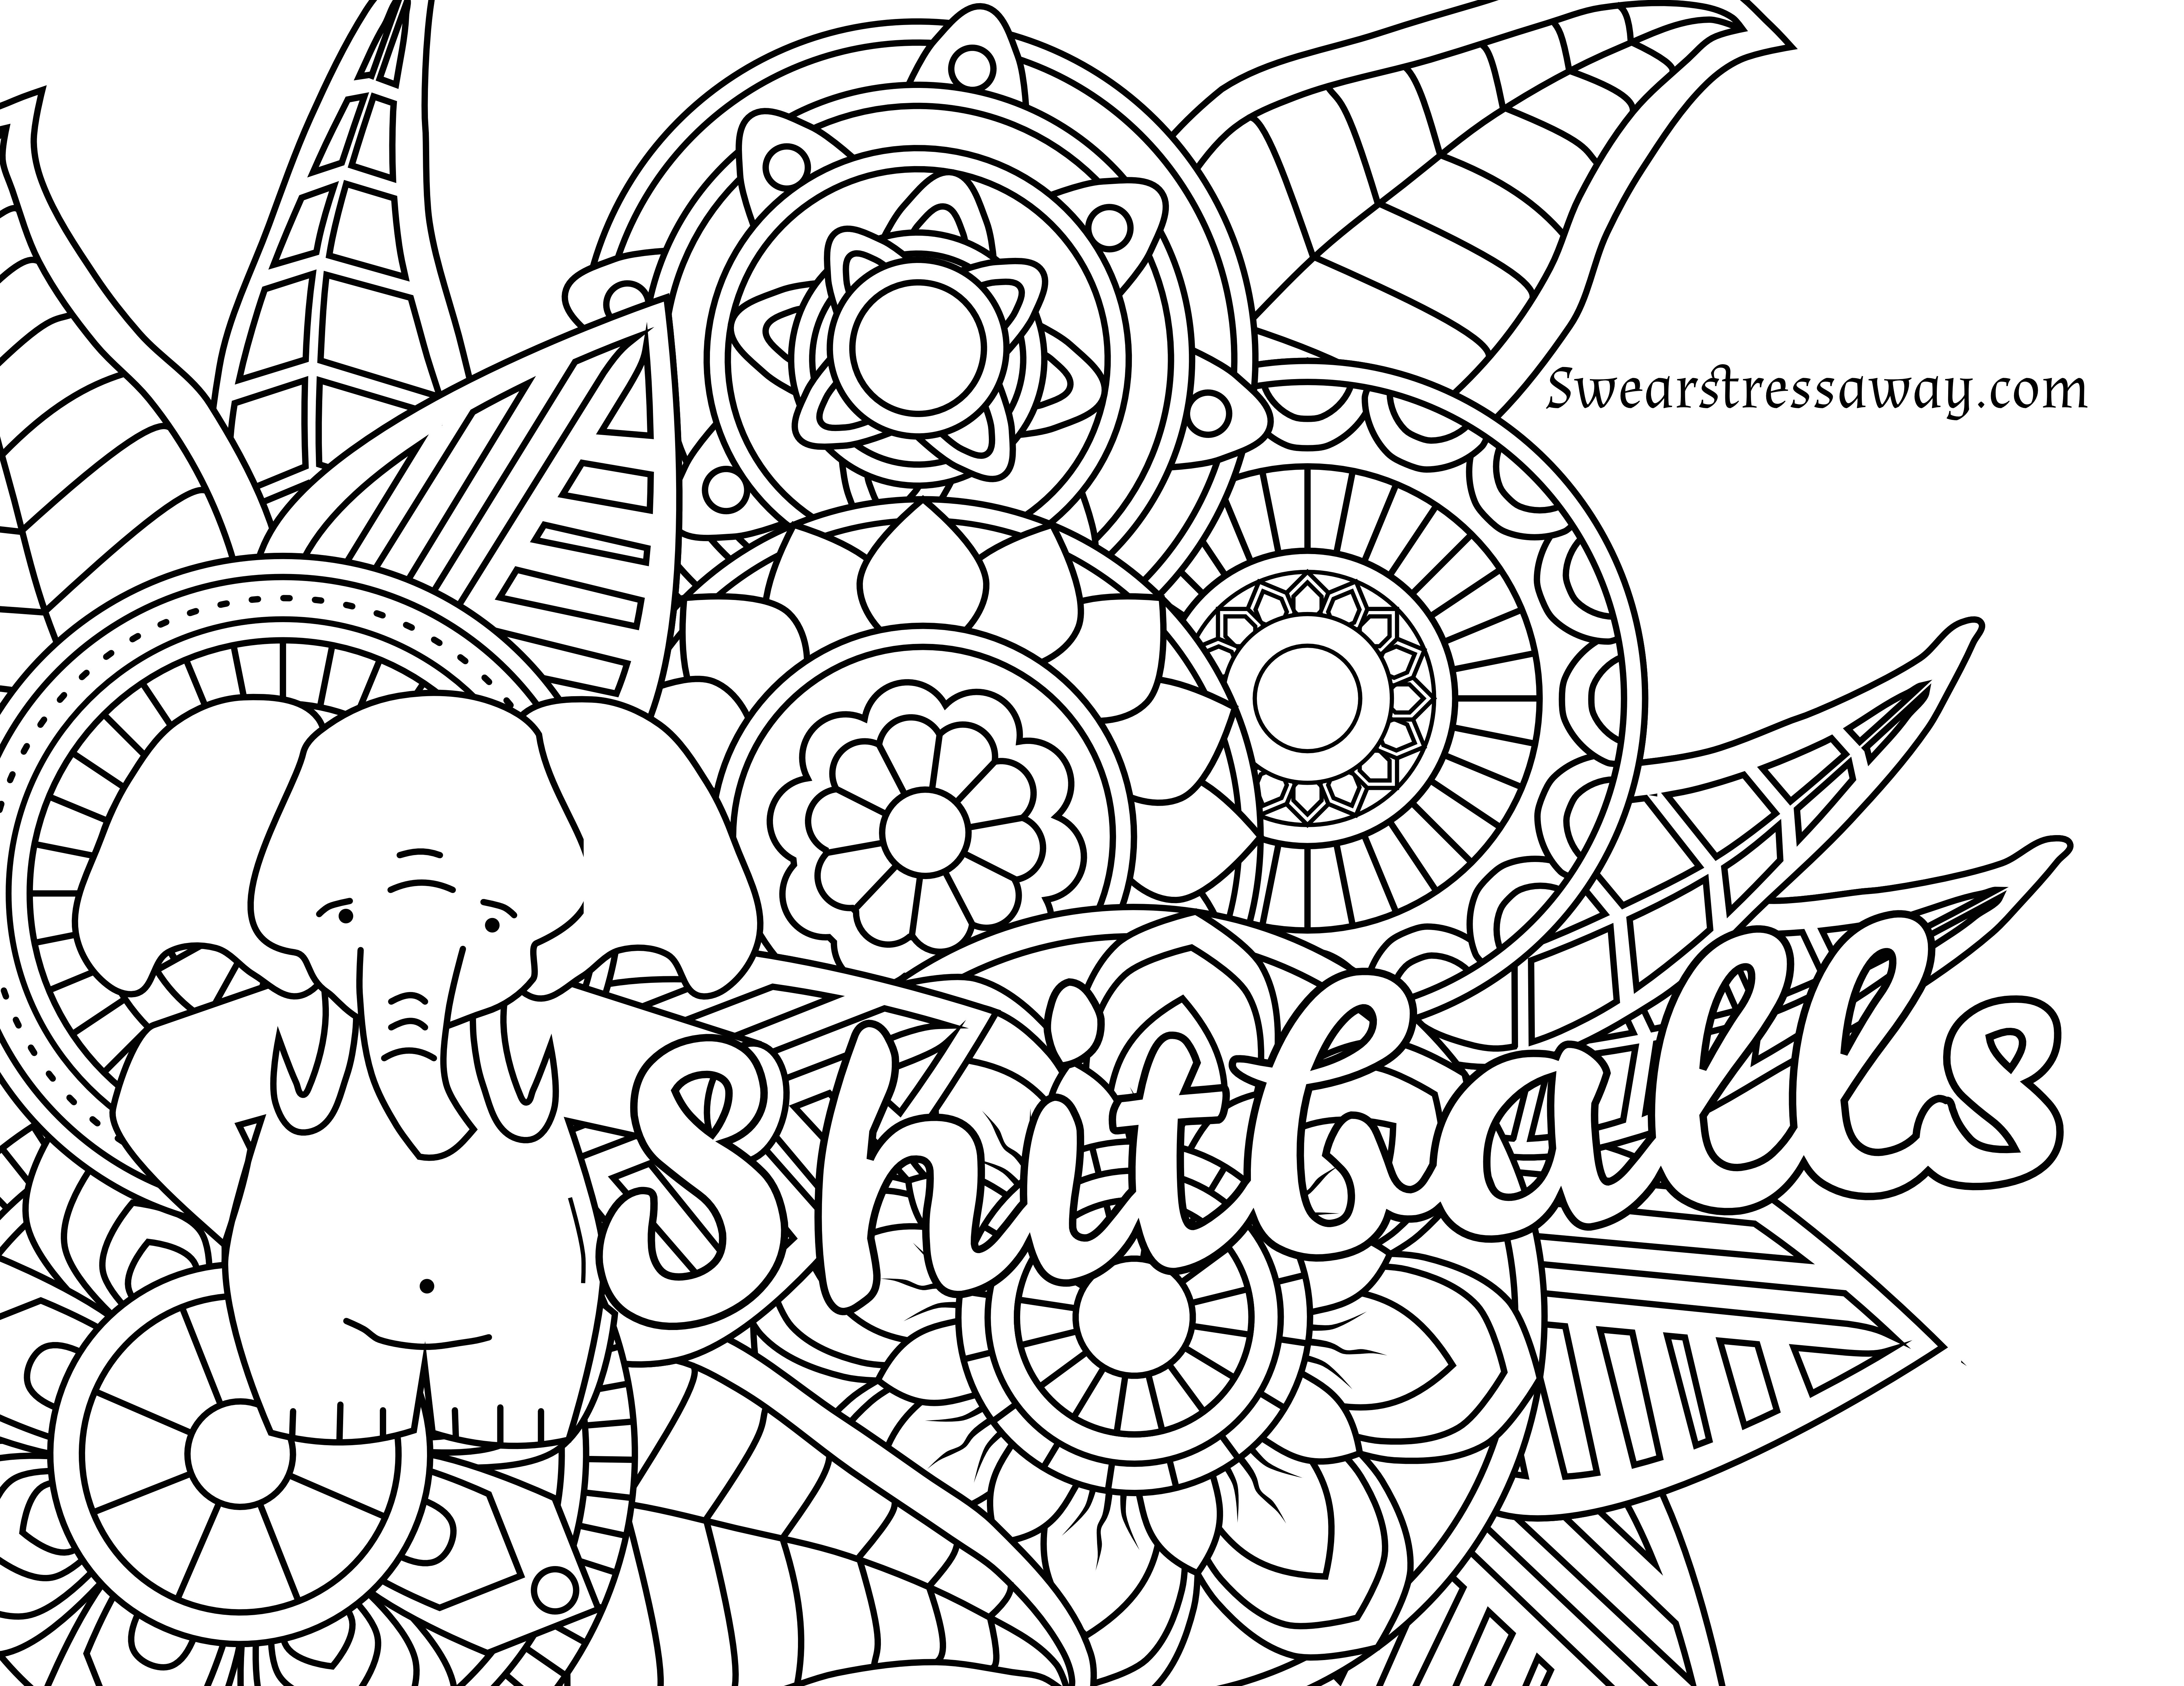 Free Printable Coloring Pages Adults Only Free Printable Coloring - Free Printable Coloring Designs For Adults